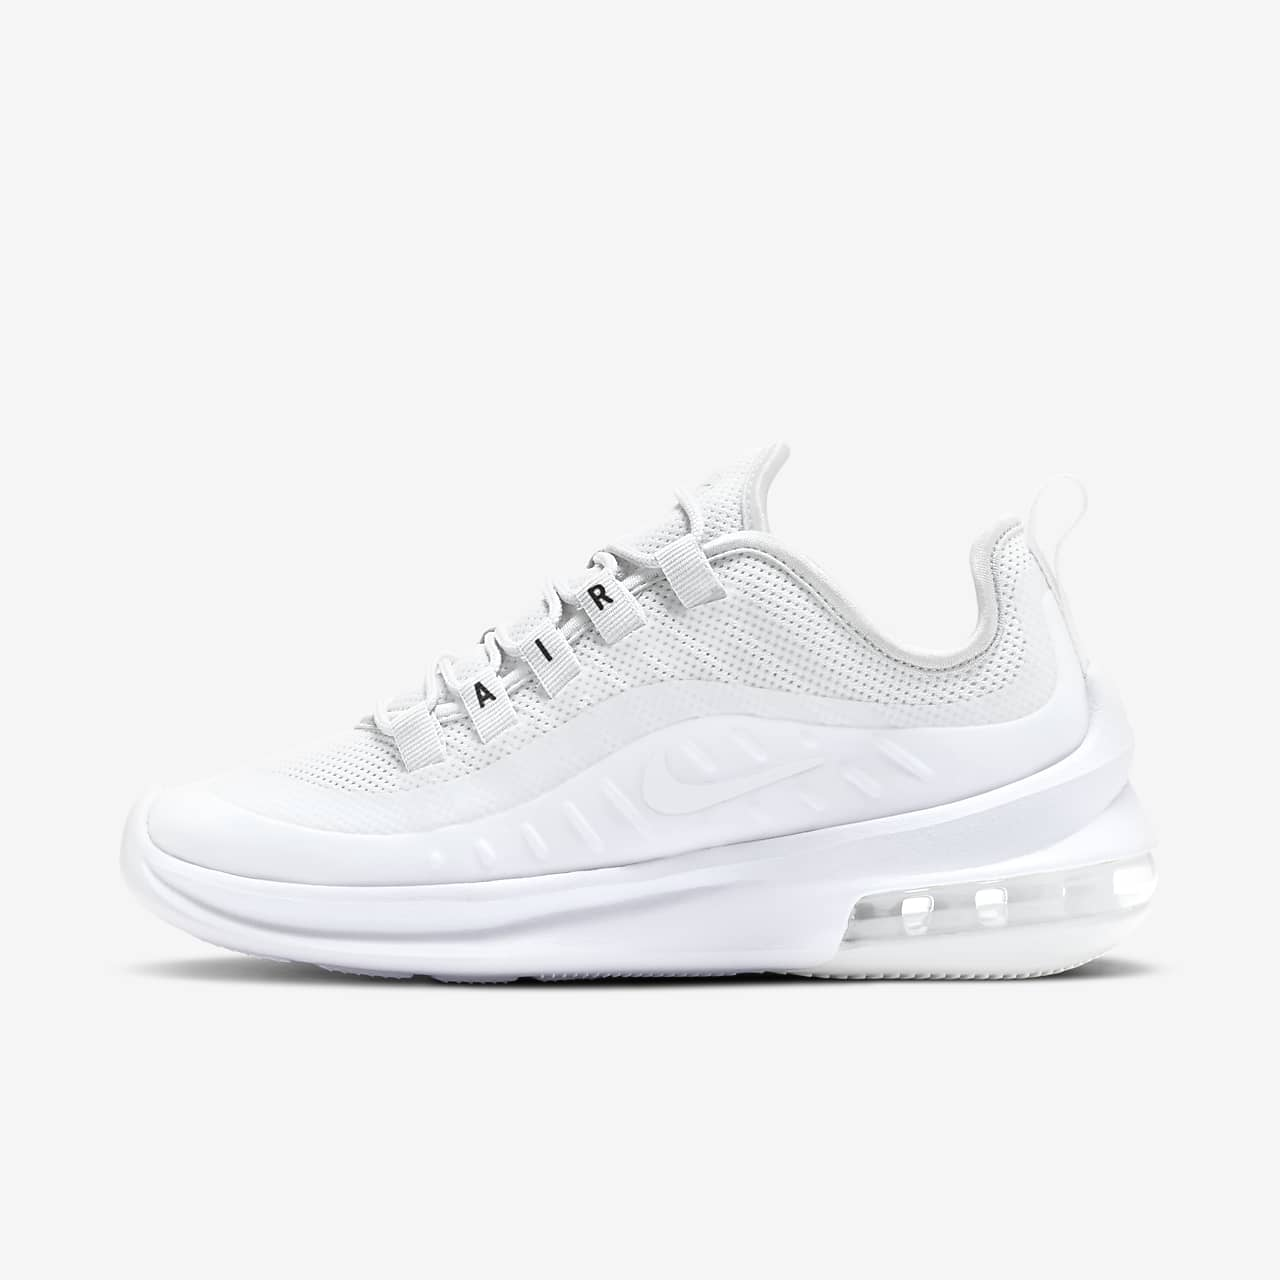 2019 Women's Nike Air Max Axis White Black For Sale AA2168 100